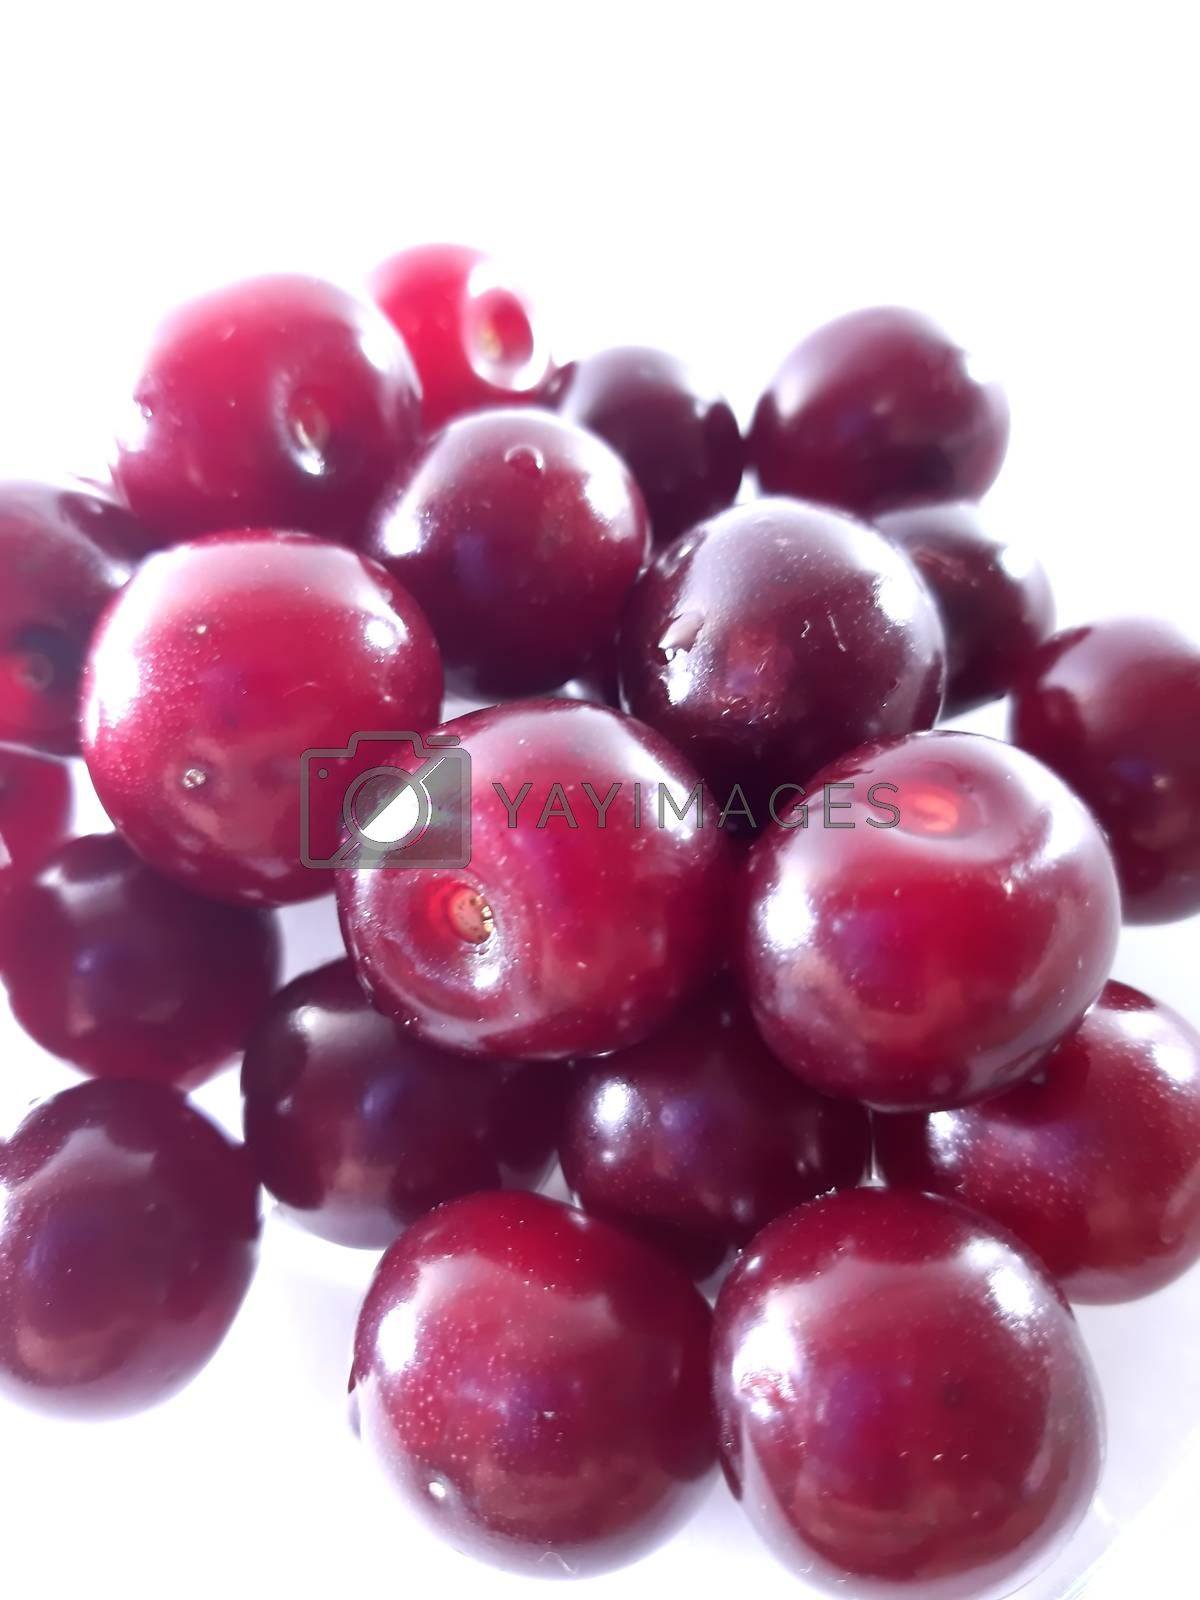 Photo cherry on a transparent plate. Healthy food. Vegetarian red food. Berries and fruits. Berry for snack.